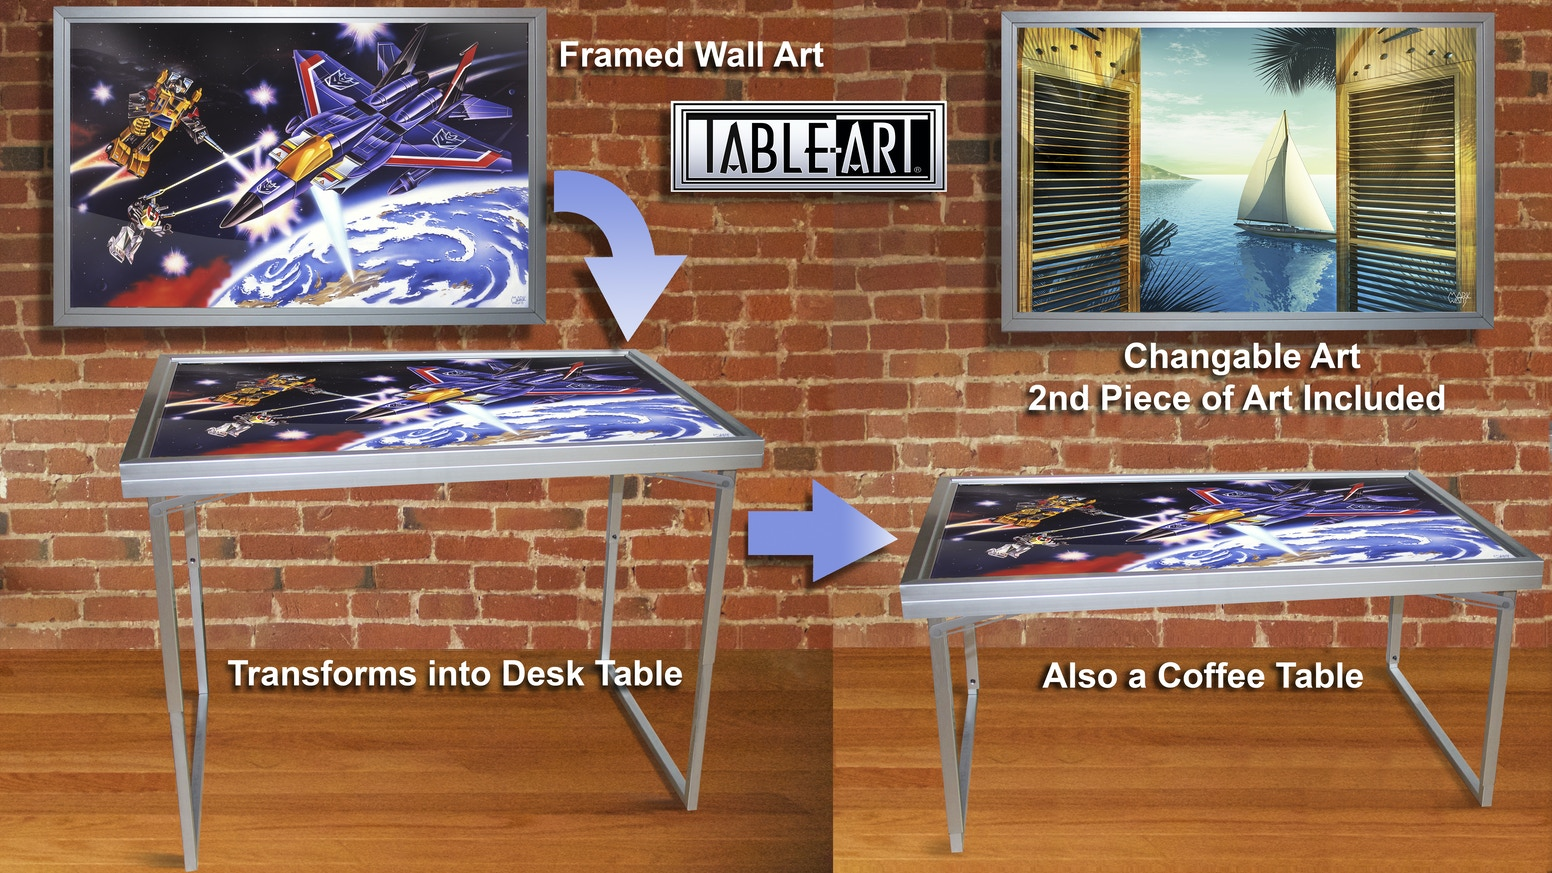 "Beautiful anodized aluminum framed wall art 24X36"" that transforms Into a coffee table + desk table great changeable prints included."